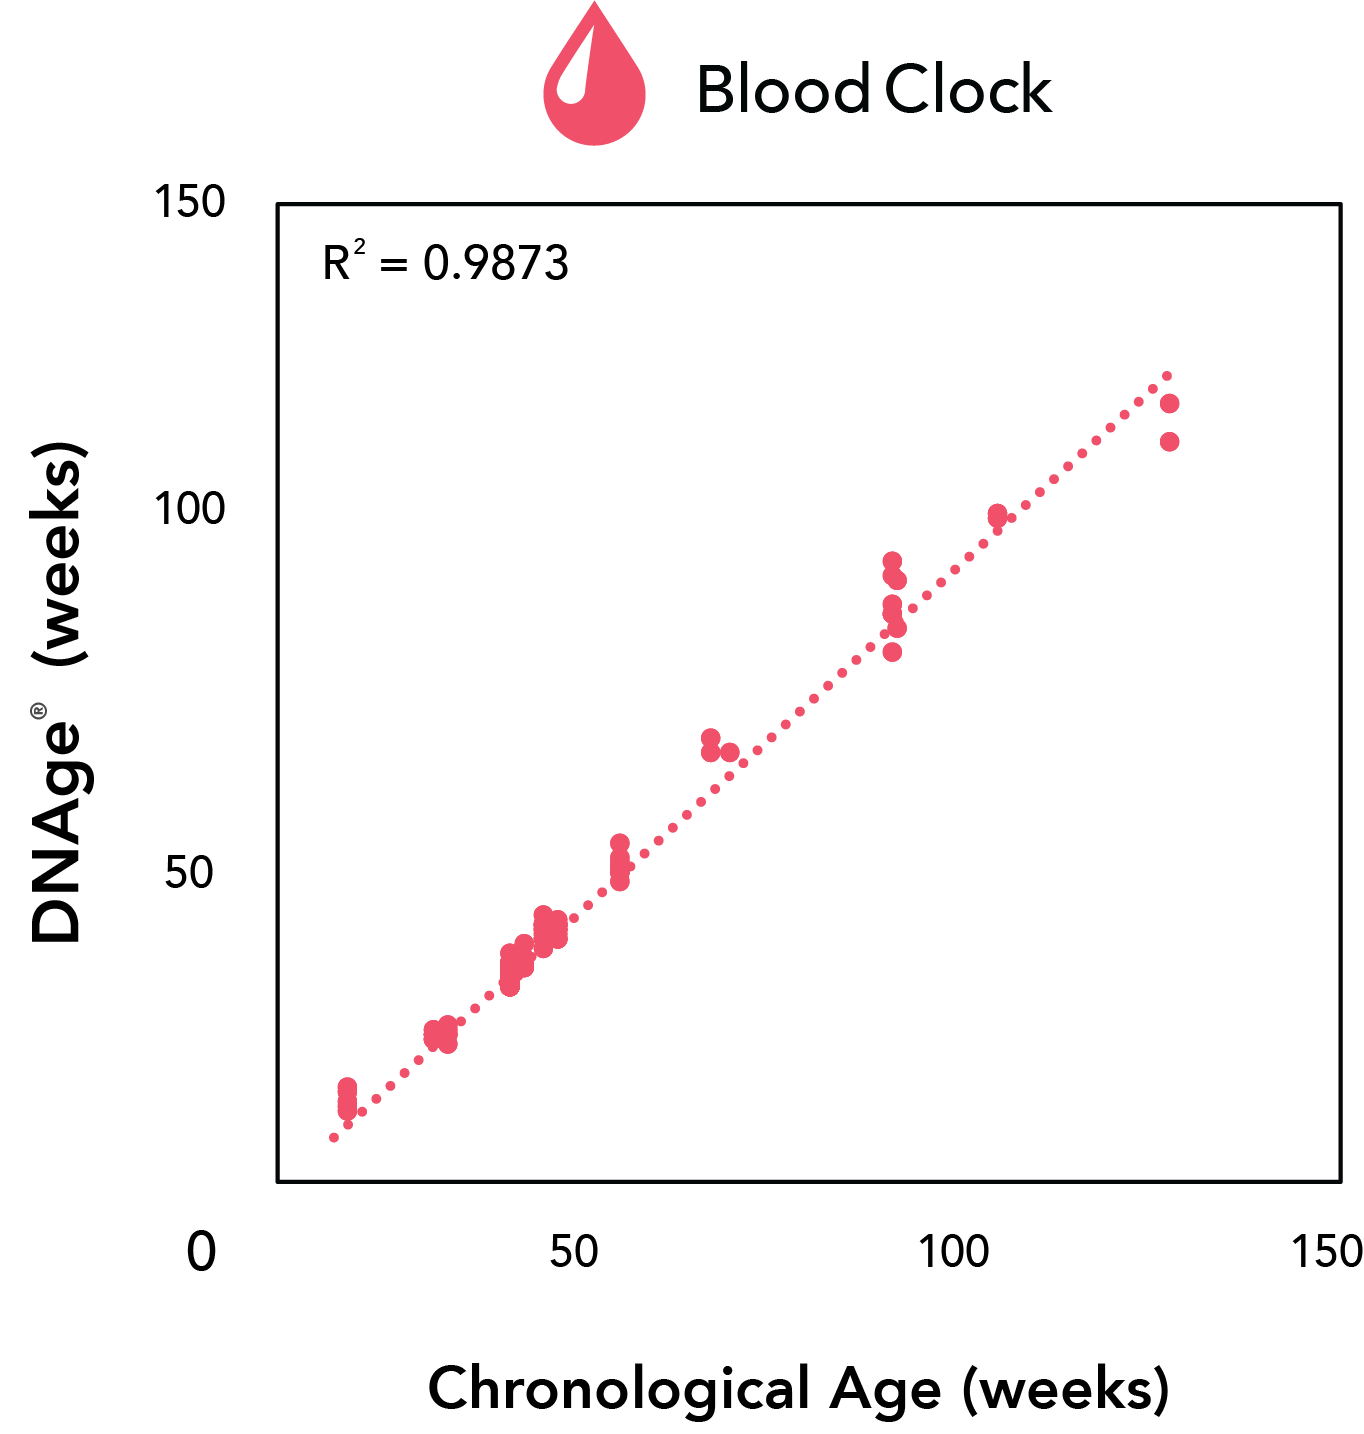 Blood Clock chart showing correlation between DNAge and chronological age